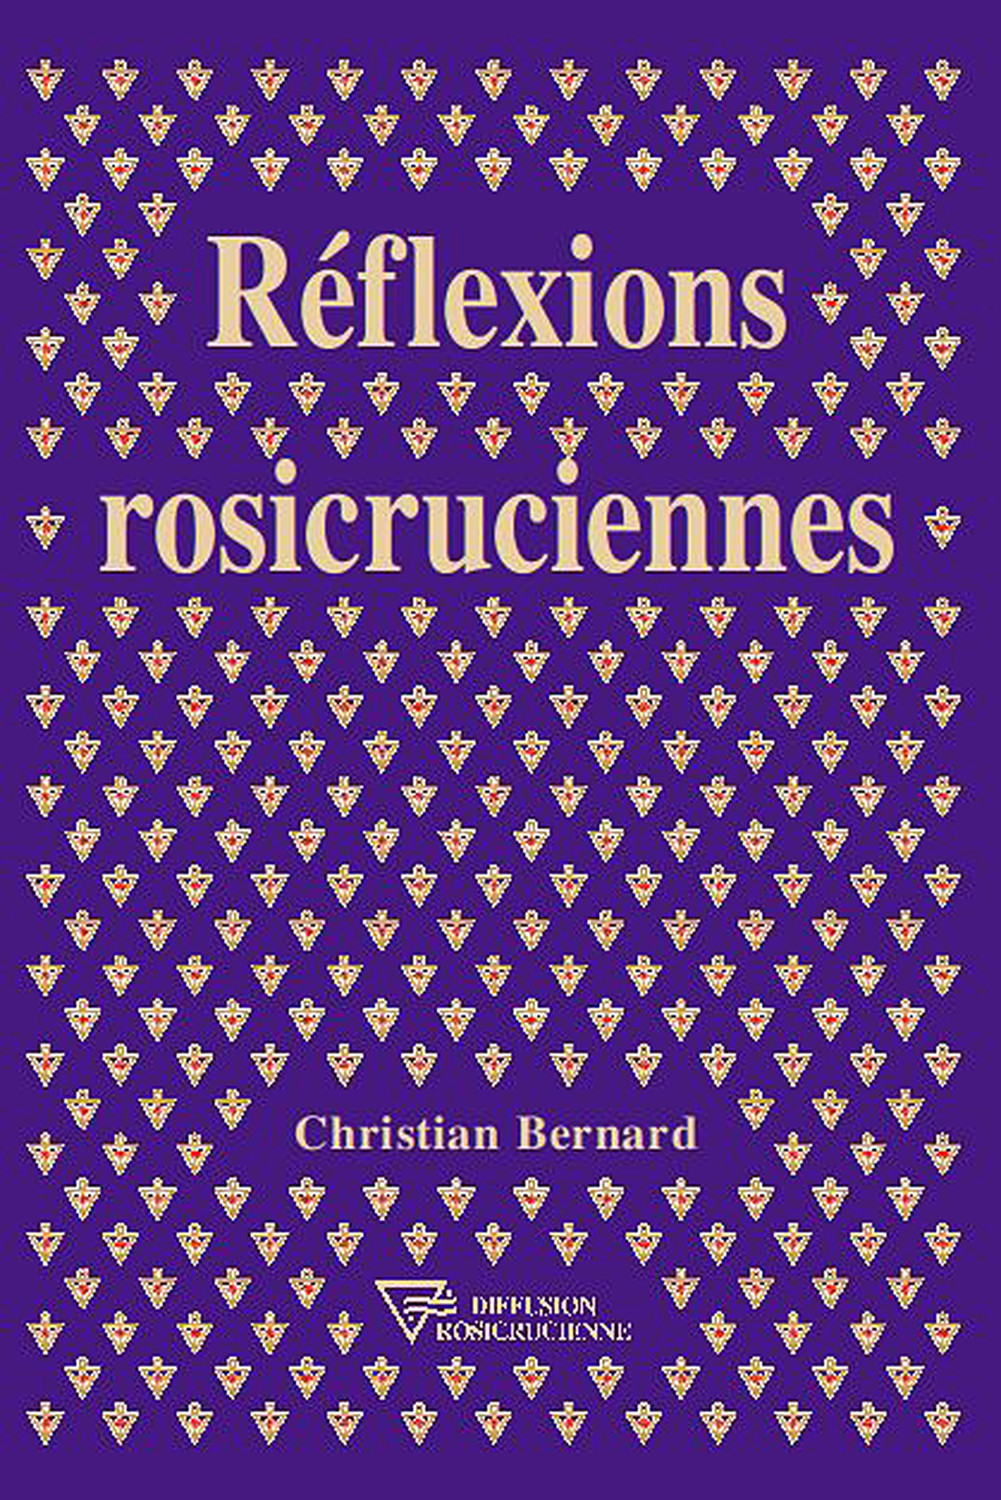 REFLEXIONS ROSICRUCIENNES